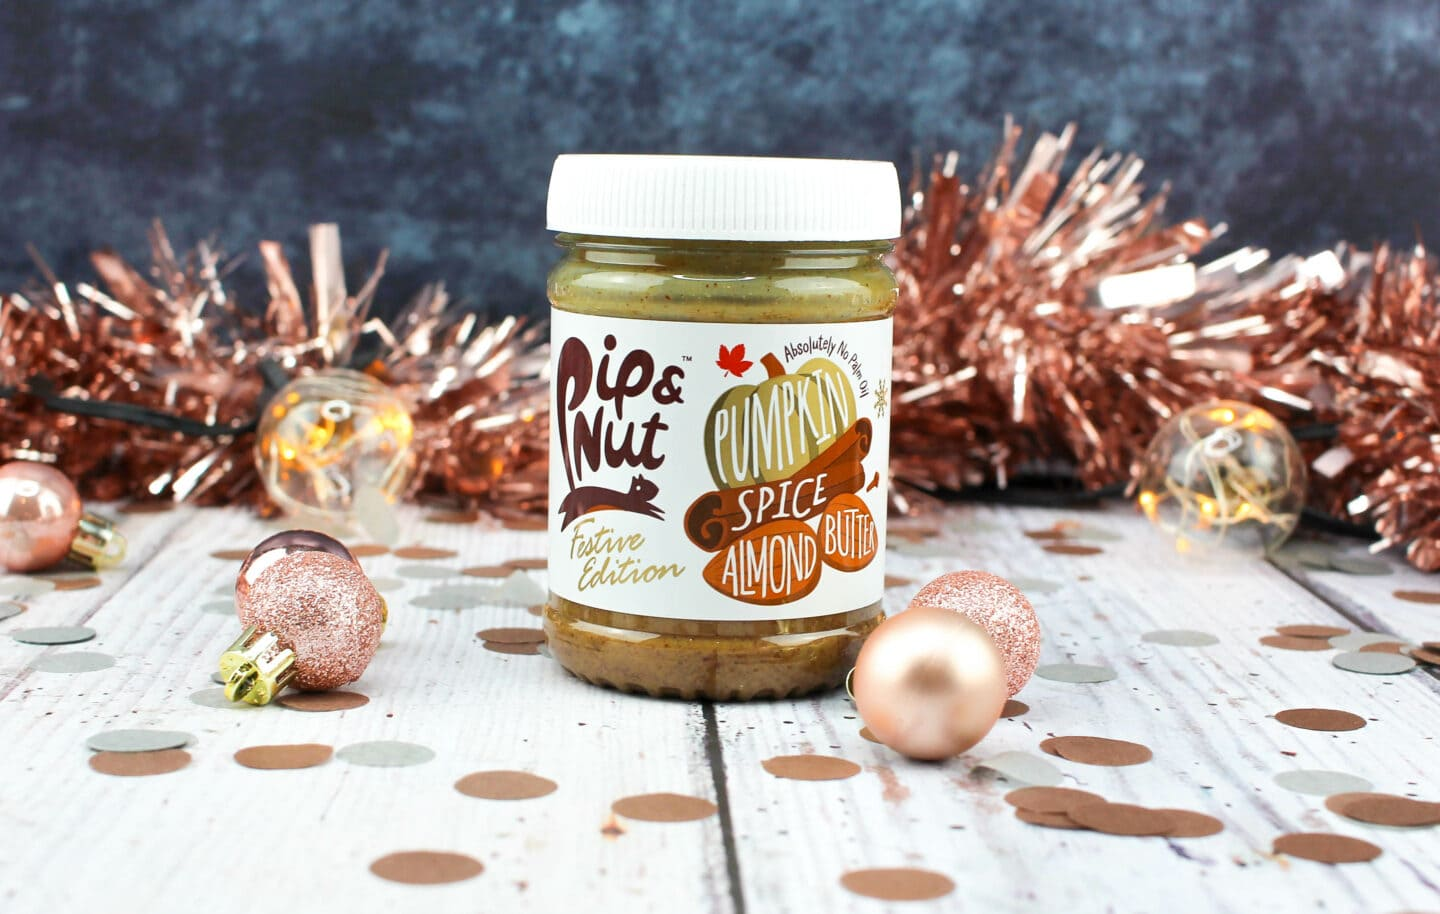 Pumpkin Spice Almond Butter from Pip & Nut